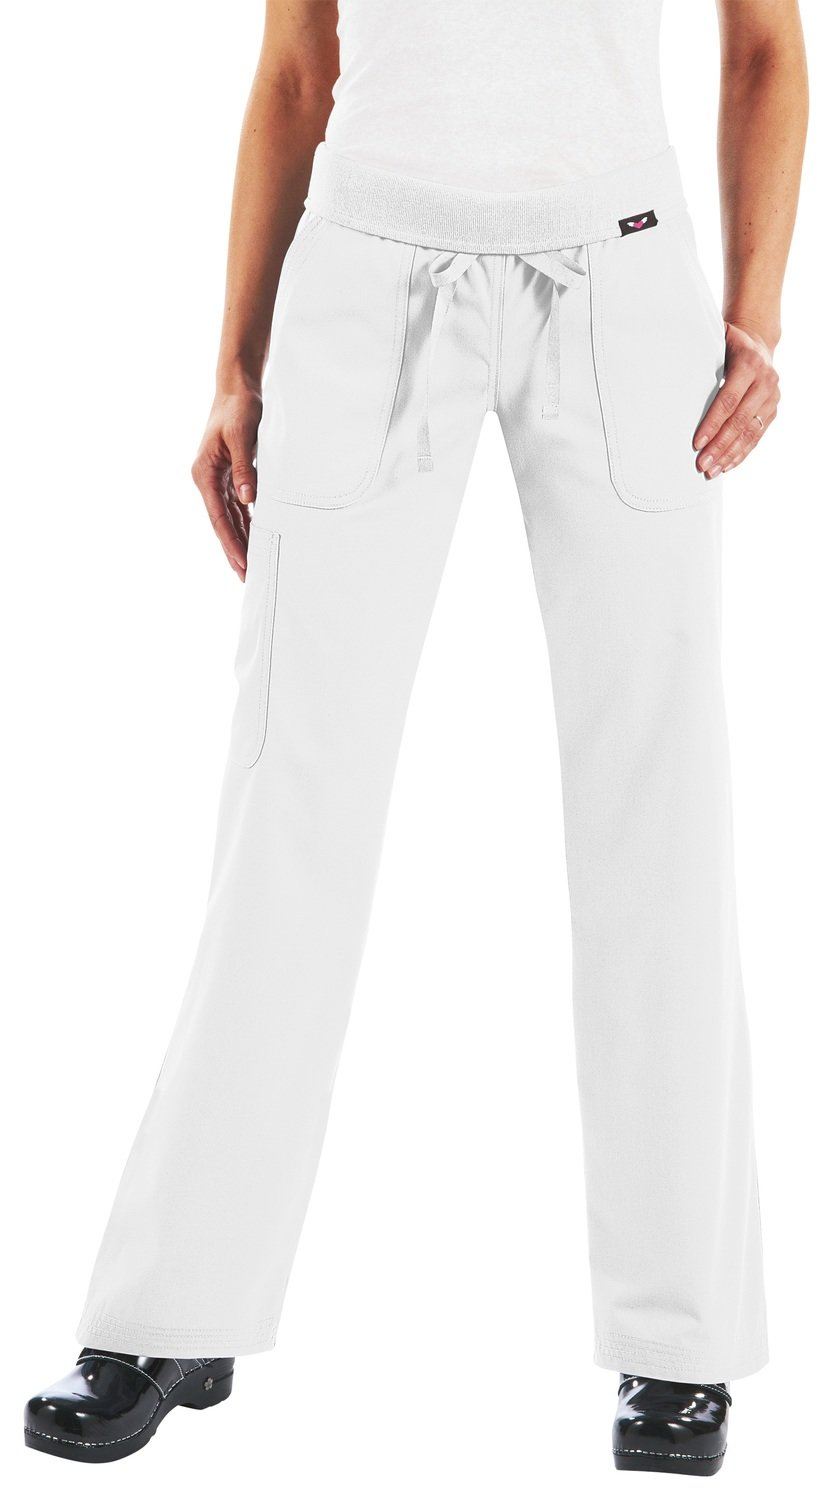 Pantalone KOI CLASSICS MORGAN Donna Colore 01. White